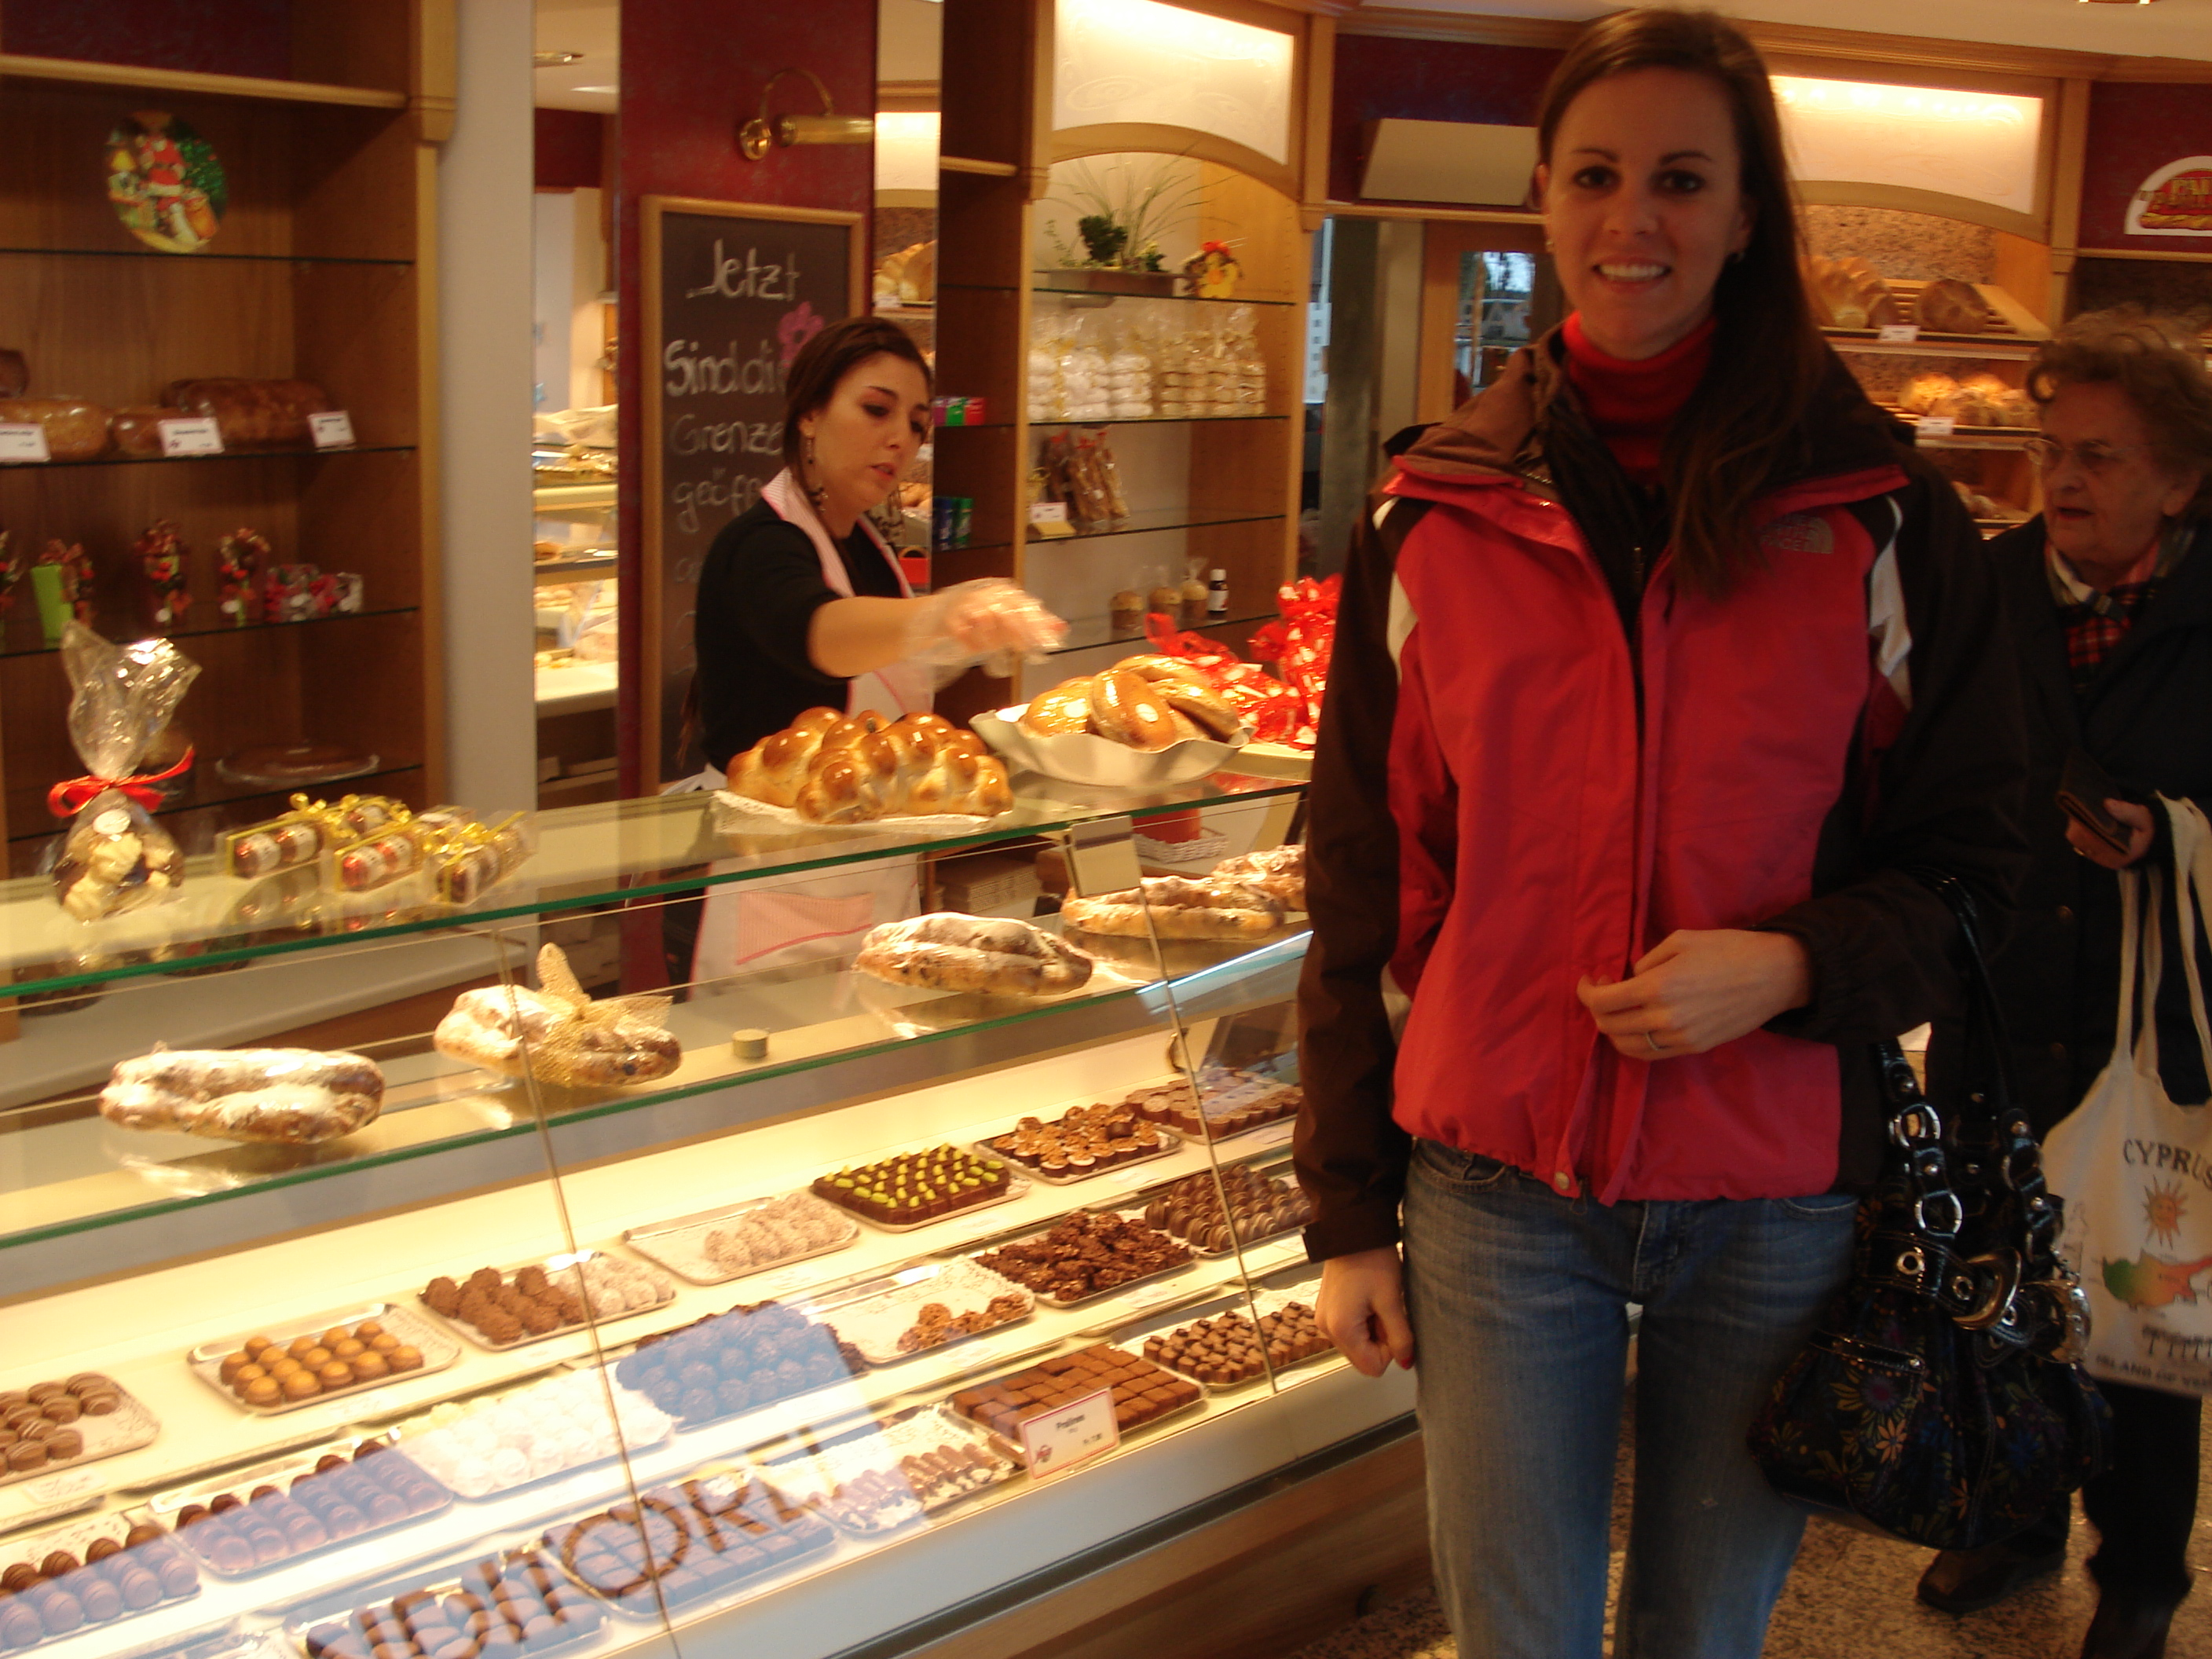 A Taste Of Switzerland At The Bakery